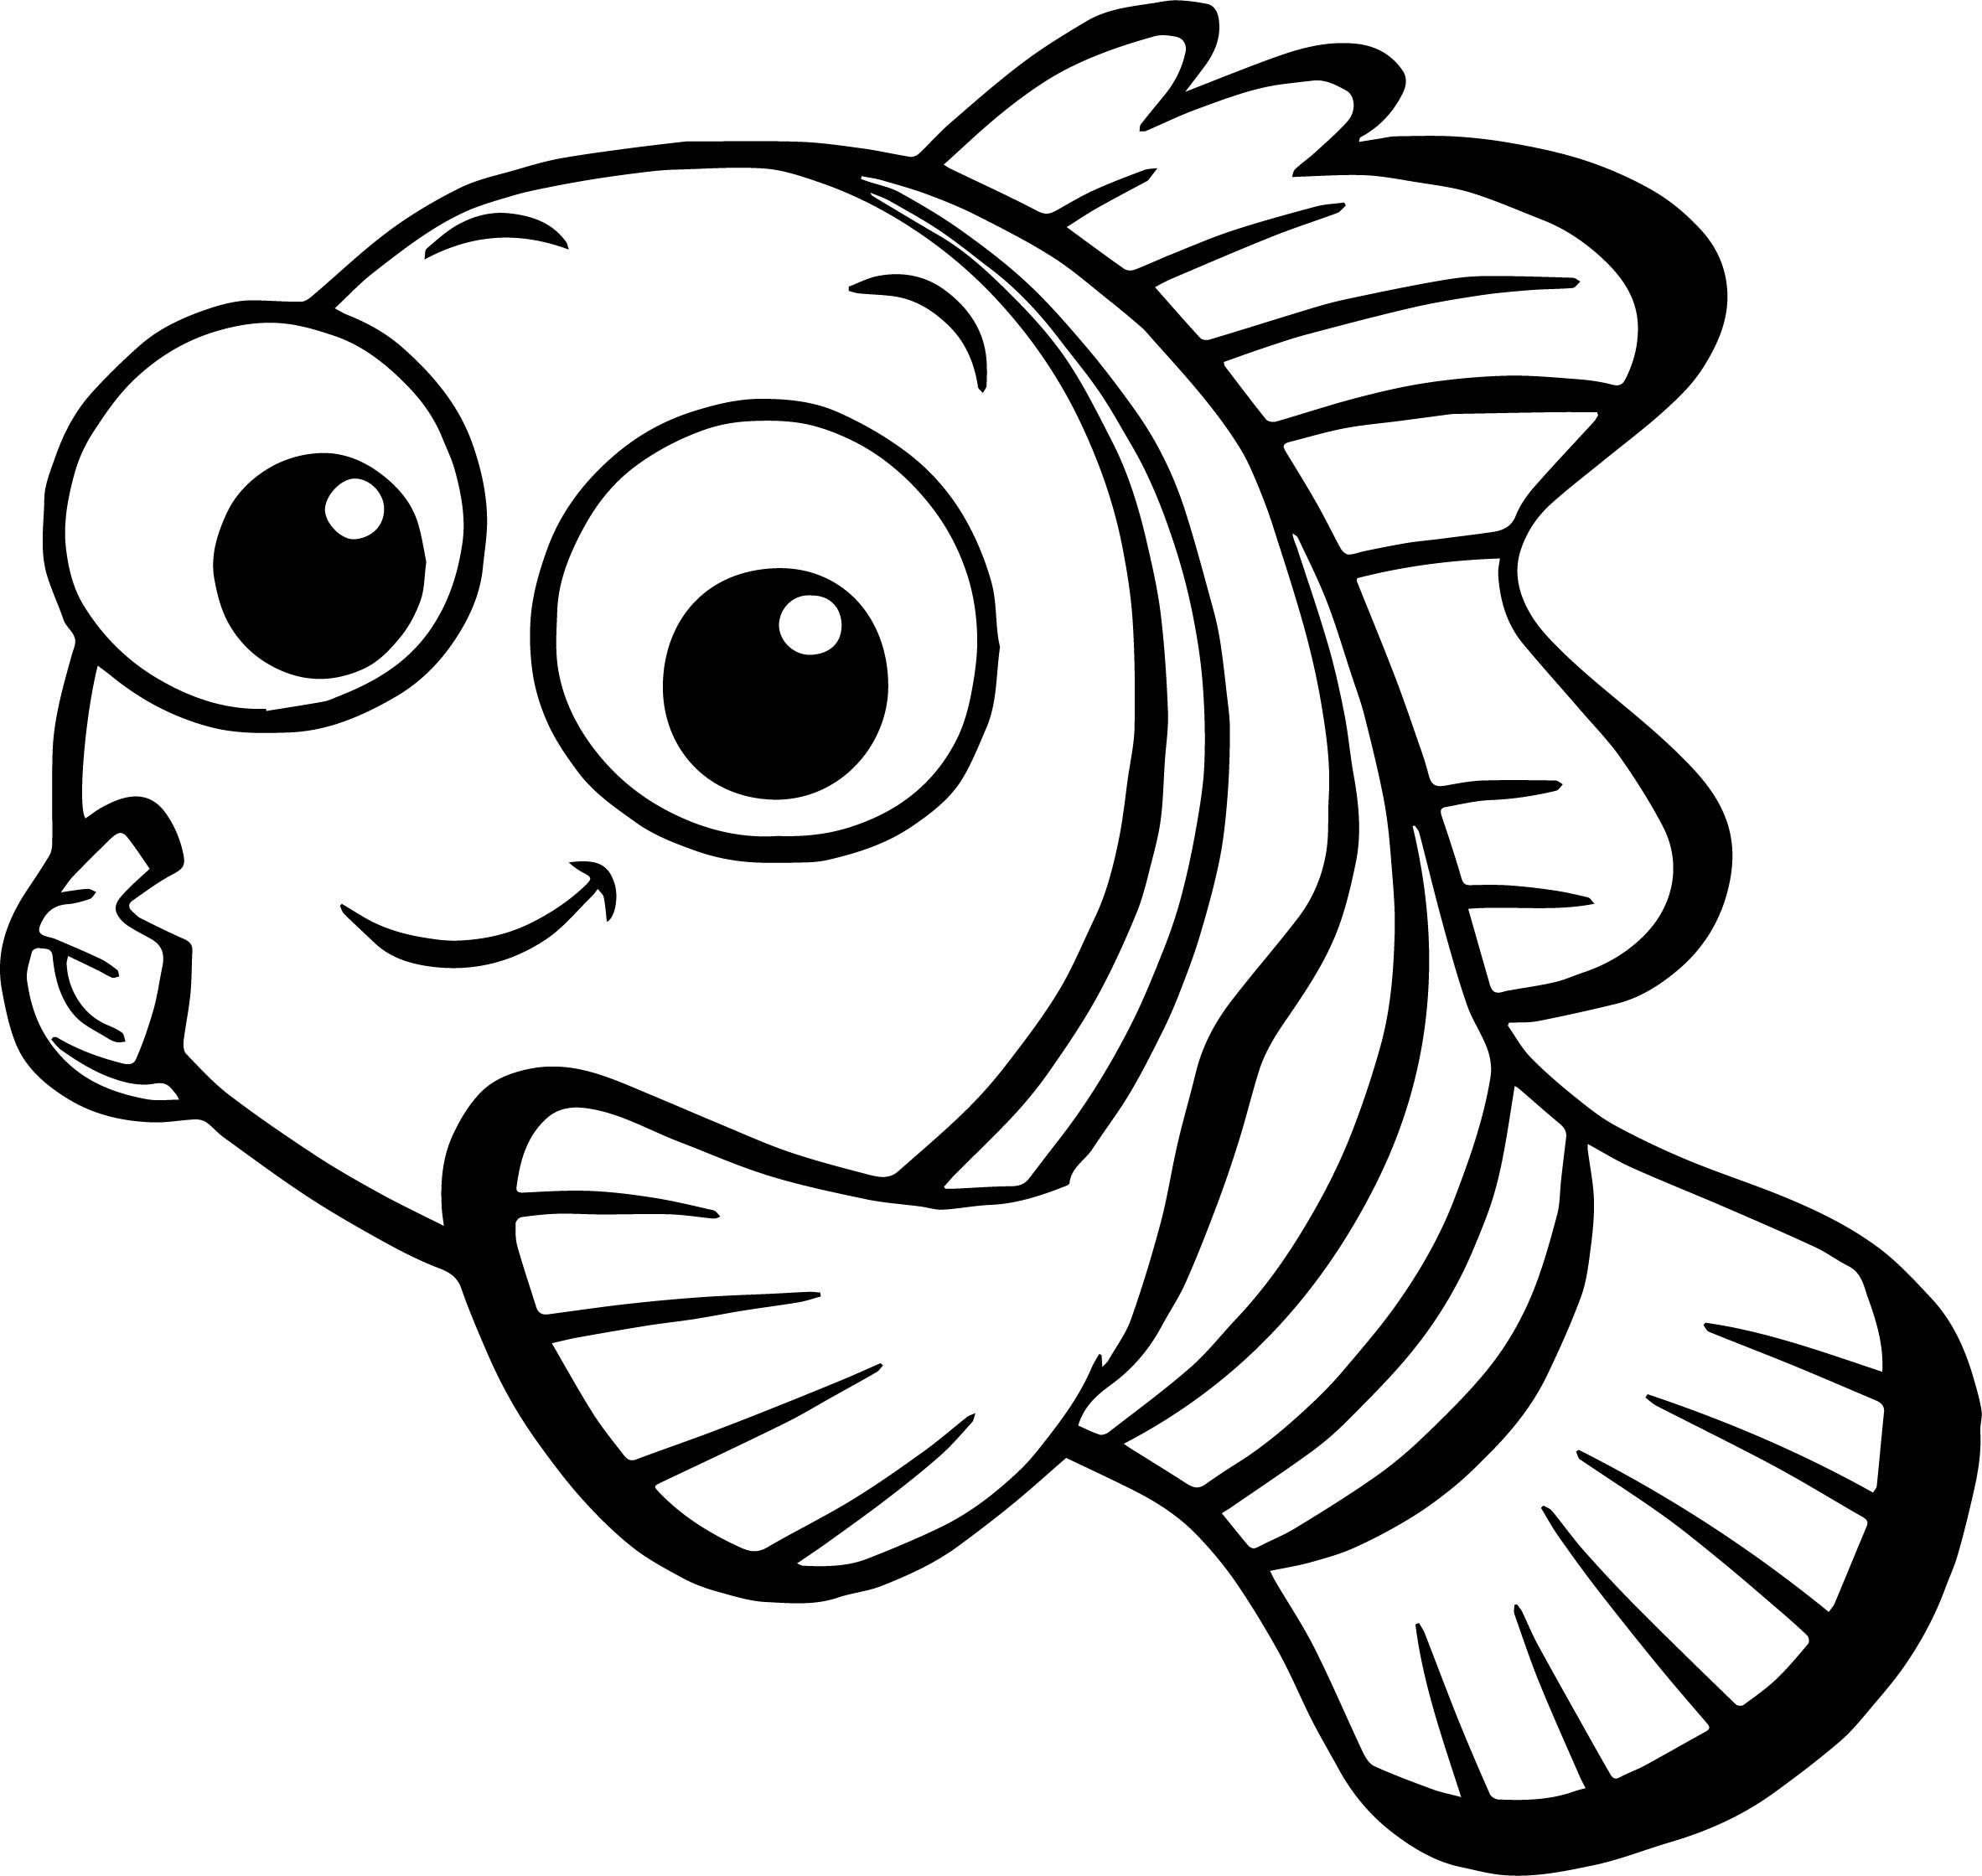 Nice Disney Finding Nemo Nemo Coloring Pages Nemo Coloring Pages Finding Nemo Coloring Pages Cartoon Coloring Pages